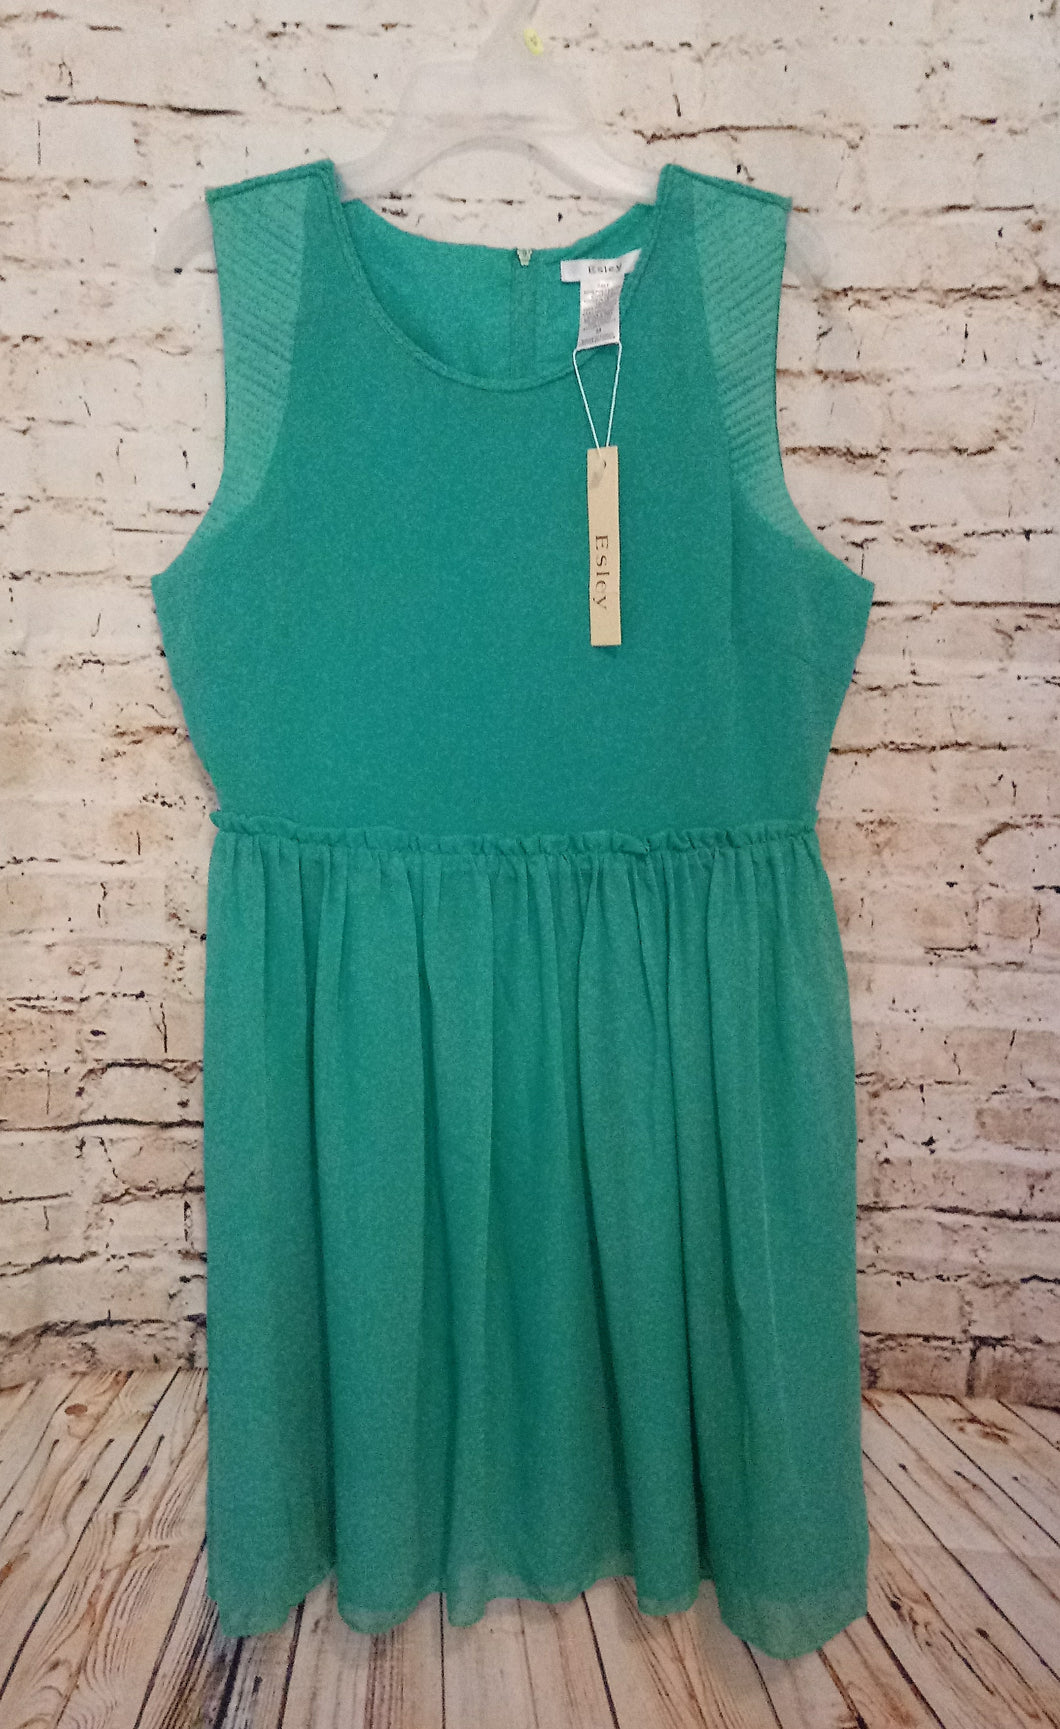 Esley Mint Green Party Dress Size M - Anna's Armoire